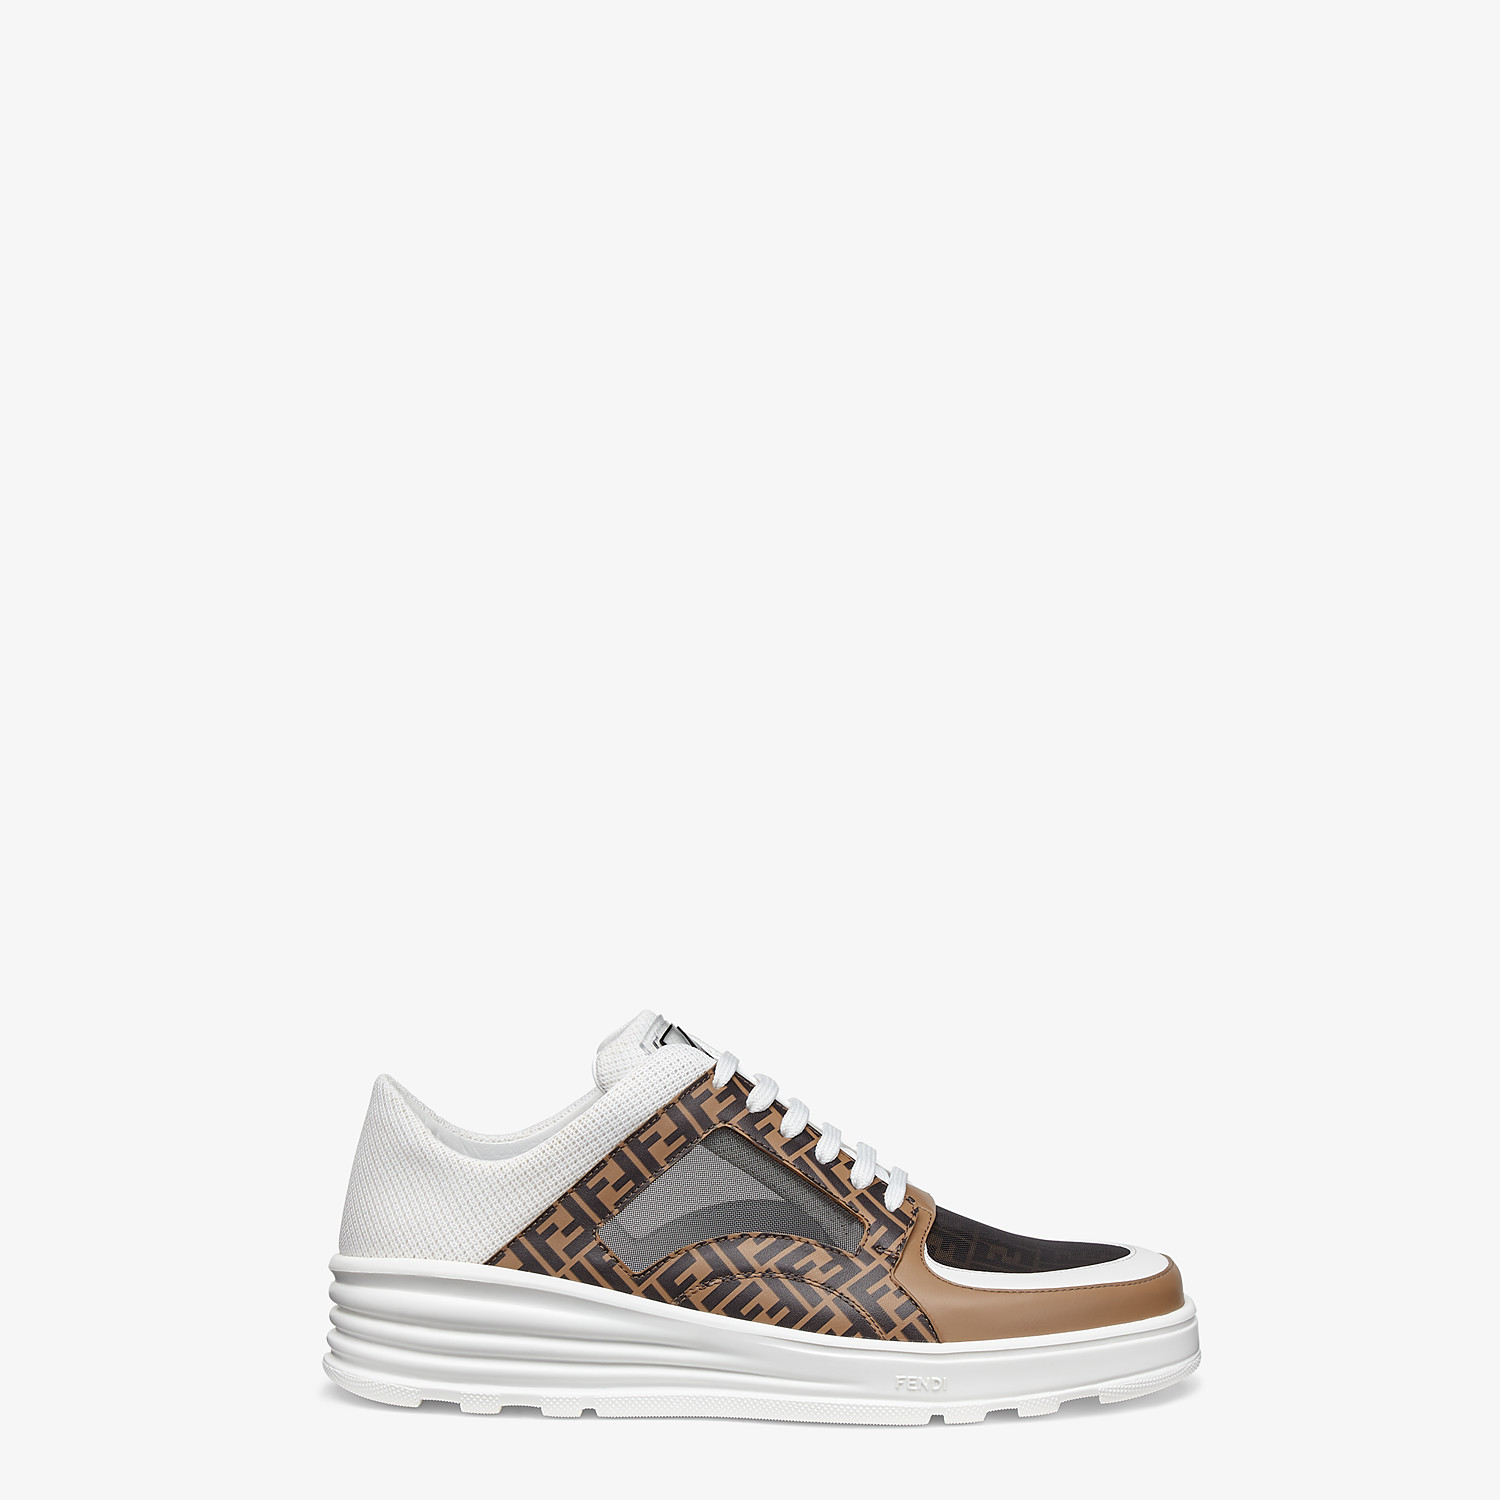 FENDI SNEAKERS - Brown leather low tops - view 1 detail